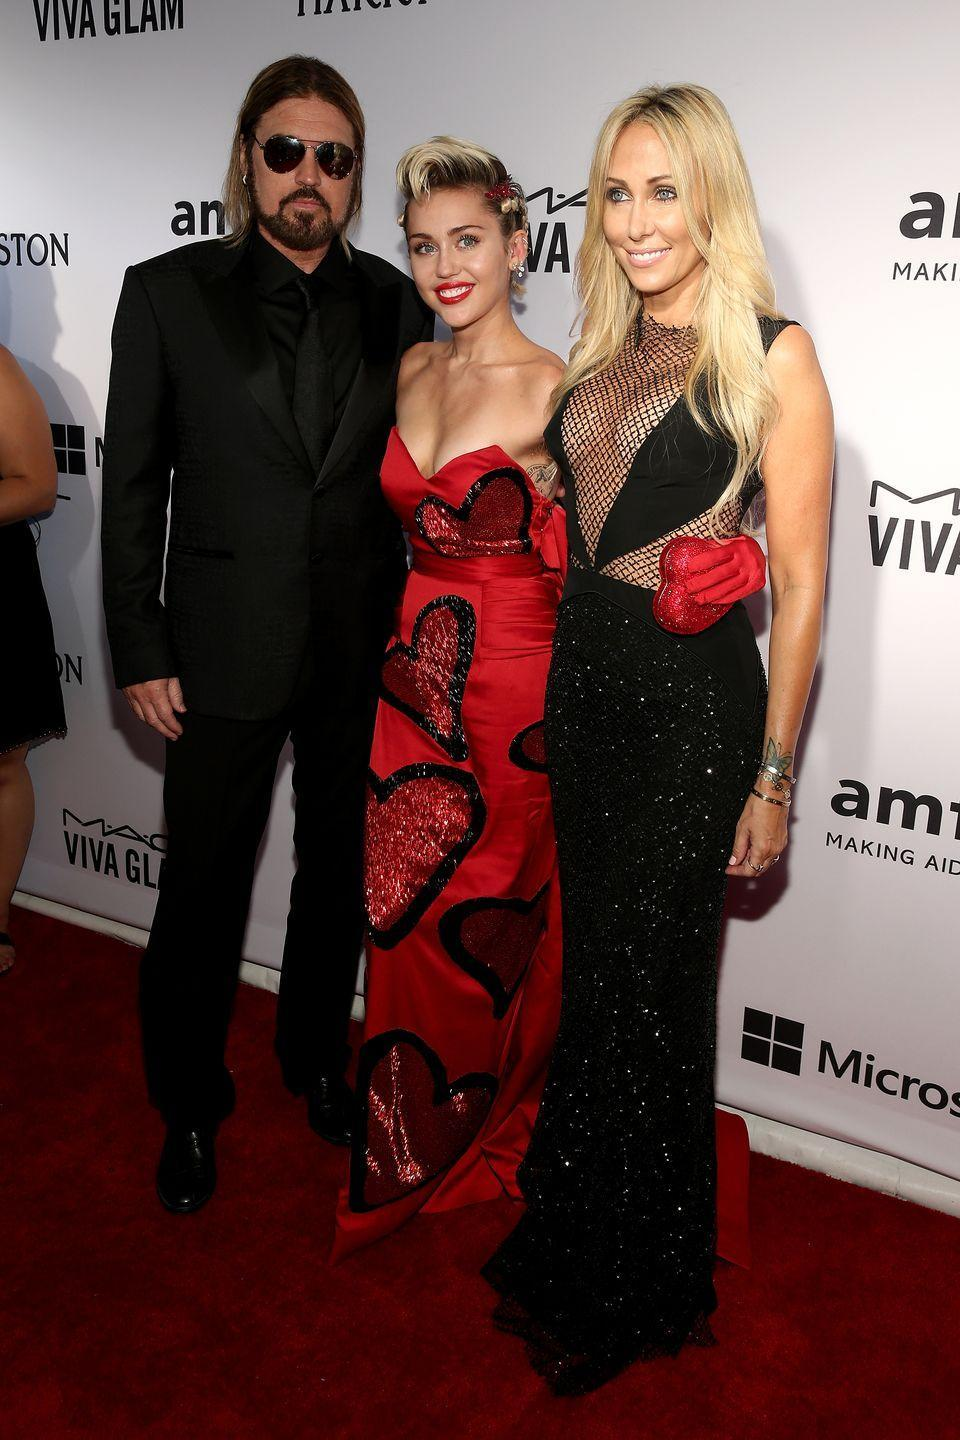 """<p><strong>Famous parent(s)</strong>: singer Billy Ray Cyrus<br><strong>What it was like</strong>: """"We have always had money and we have always had fame,"""" Miley has <a href=""""http://www.elleuk.com/fashion/celebrity-style/articles/a26094/miley-cyrus-elle-cover-interview/"""" rel=""""nofollow noopener"""" target=""""_blank"""" data-ylk=""""slk:said"""" class=""""link rapid-noclick-resp"""">said</a>. """"It's not new. People who grew up without either can get more of a culture shock and go the wrong way. 'Oh my God, I have all this money! How can I spend it? All these people will like me because I'm famous!' I've always had people trying to be my friend for the wrong reasons. I'm used to it. I can smell bullshit a mile away.""""</p>"""